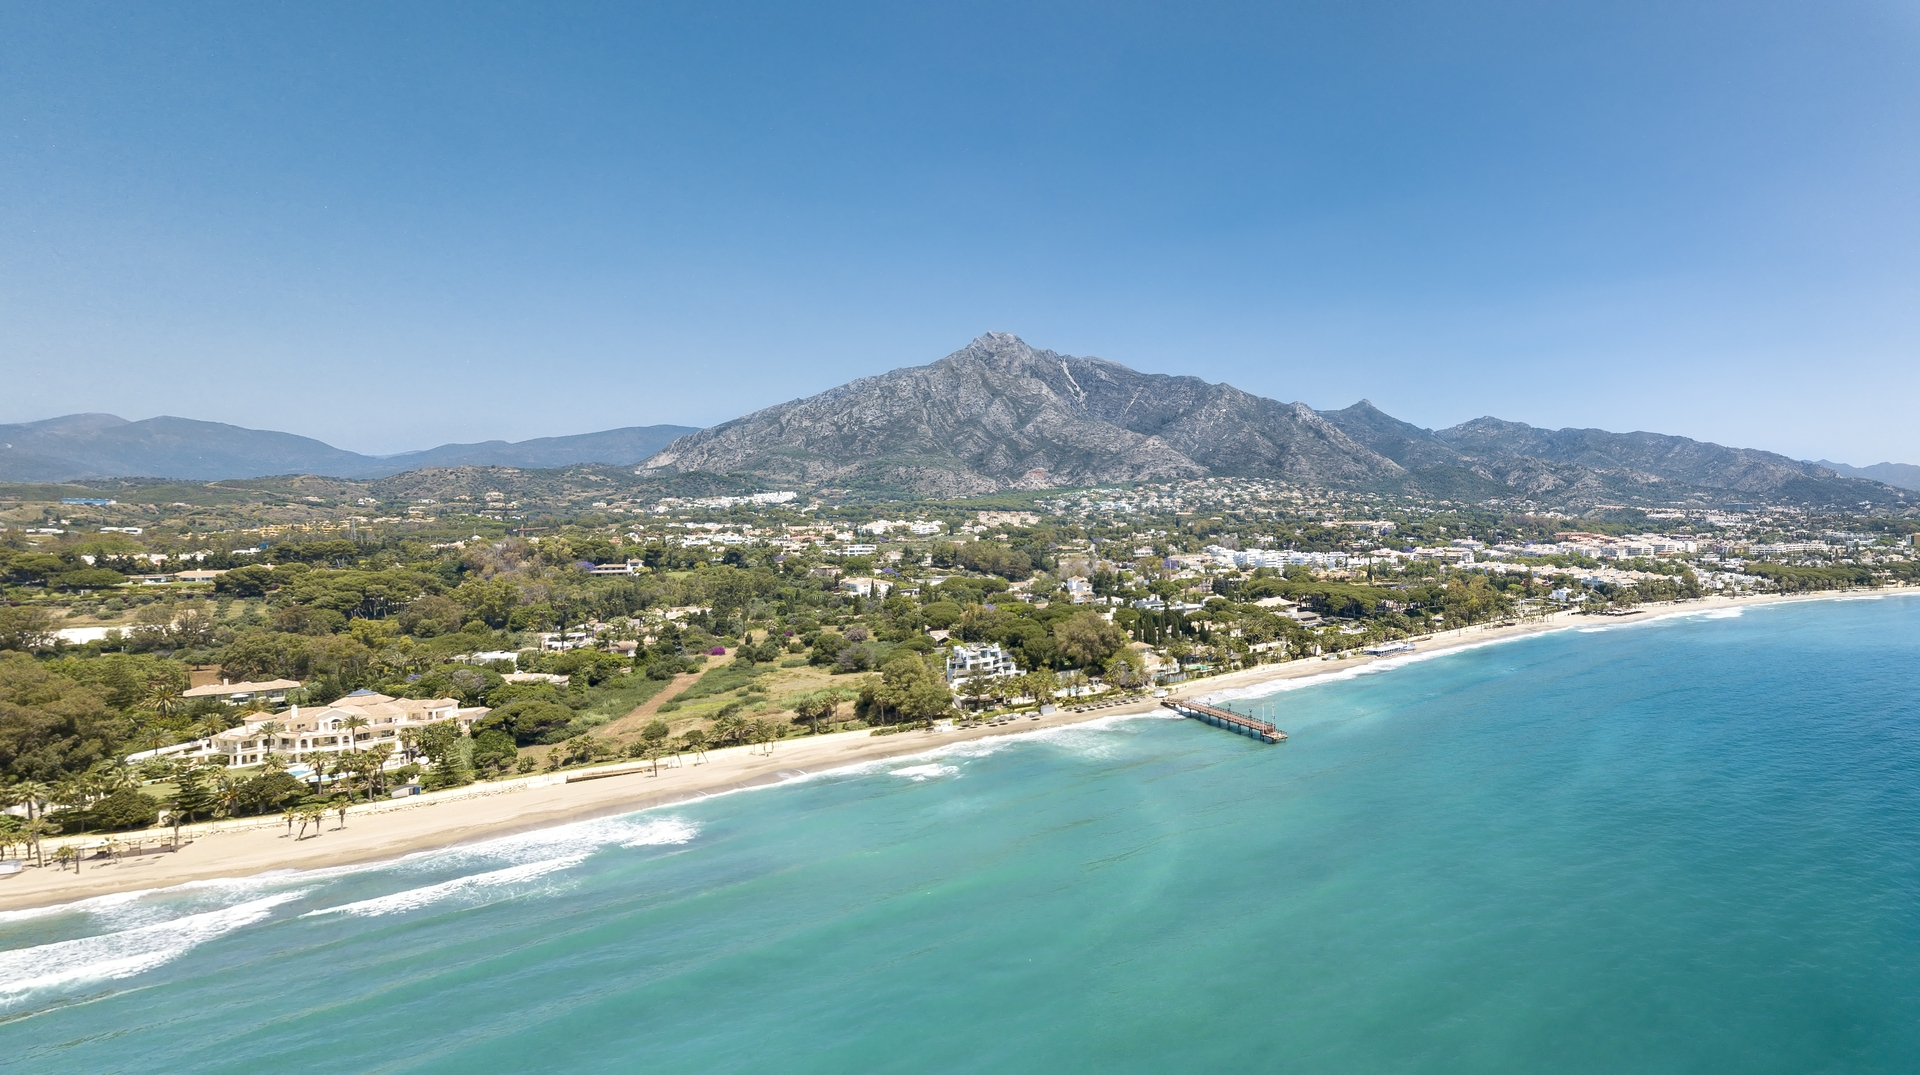 Panoramic aerial view of Casablanca  and Puente Romano beach Marbella, Famous destination with luxury proprieties and restaurants. View of  wood bridge Puente Romano and mountain La Concha.